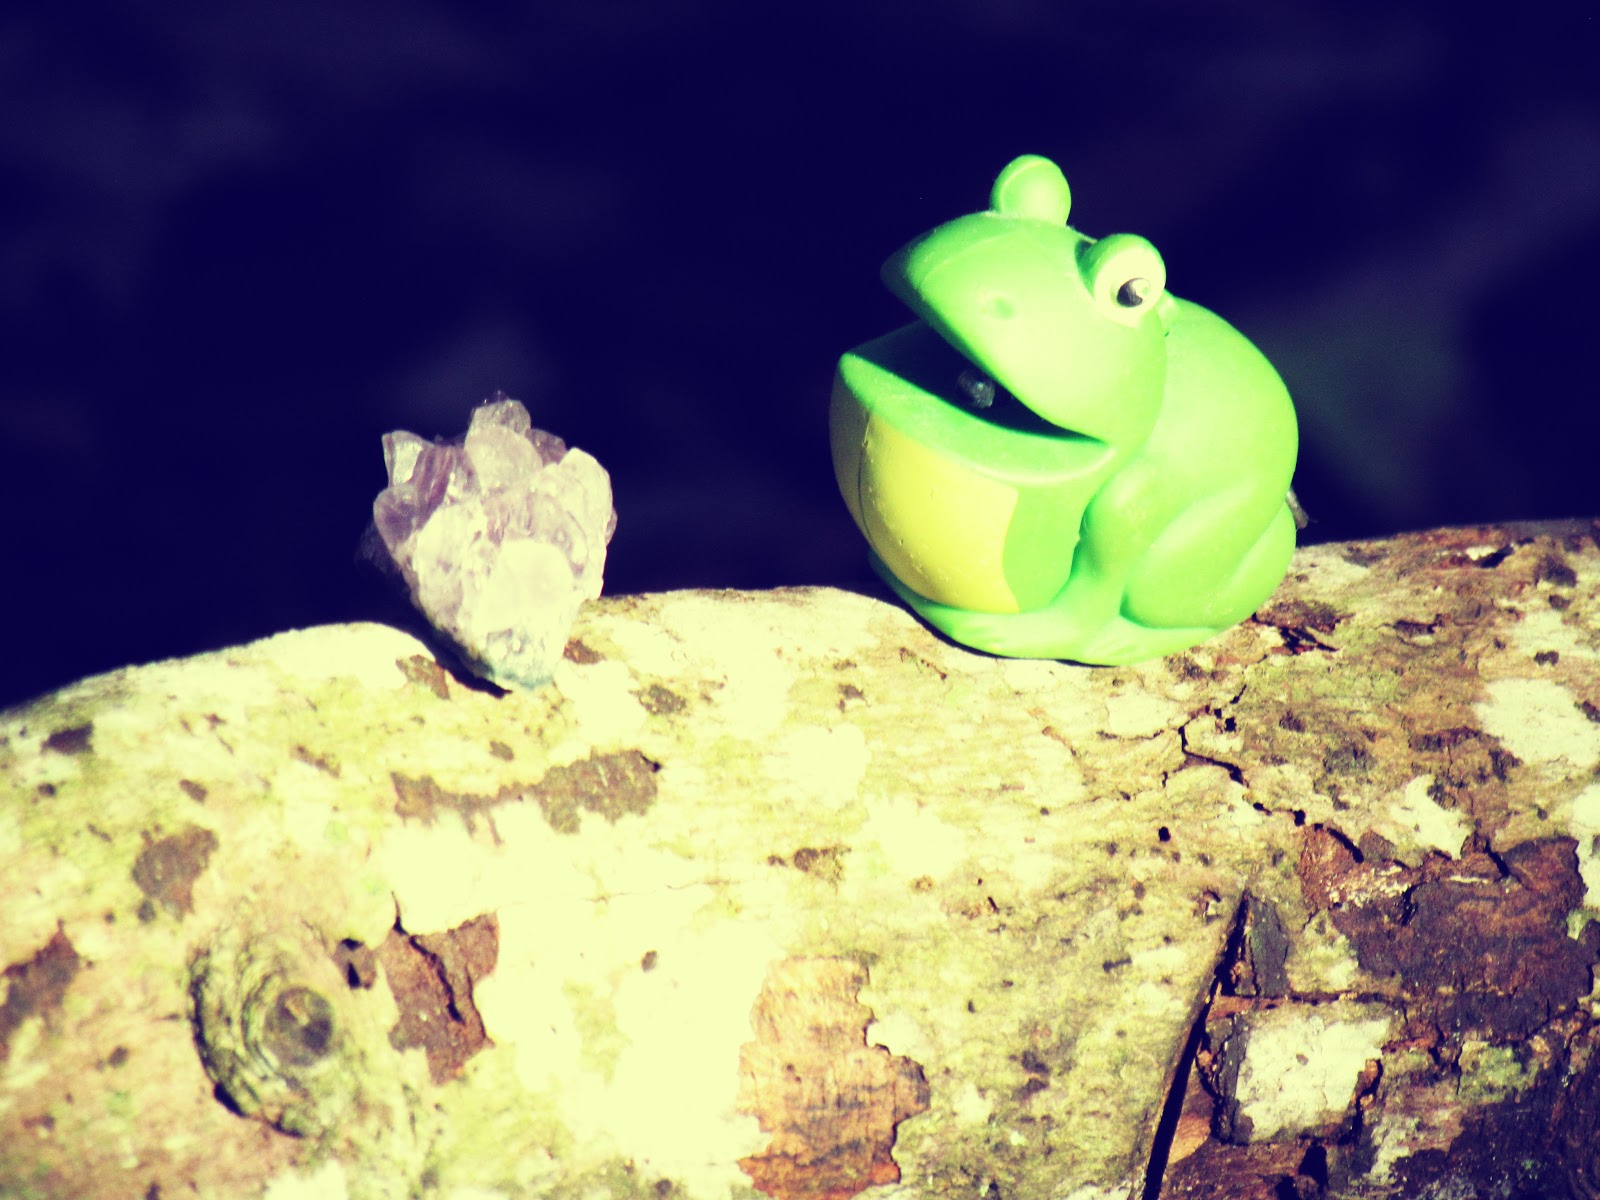 A frog chasing a purple amethyst healing stone on a wooden log in a dark, fairy enchanted forest